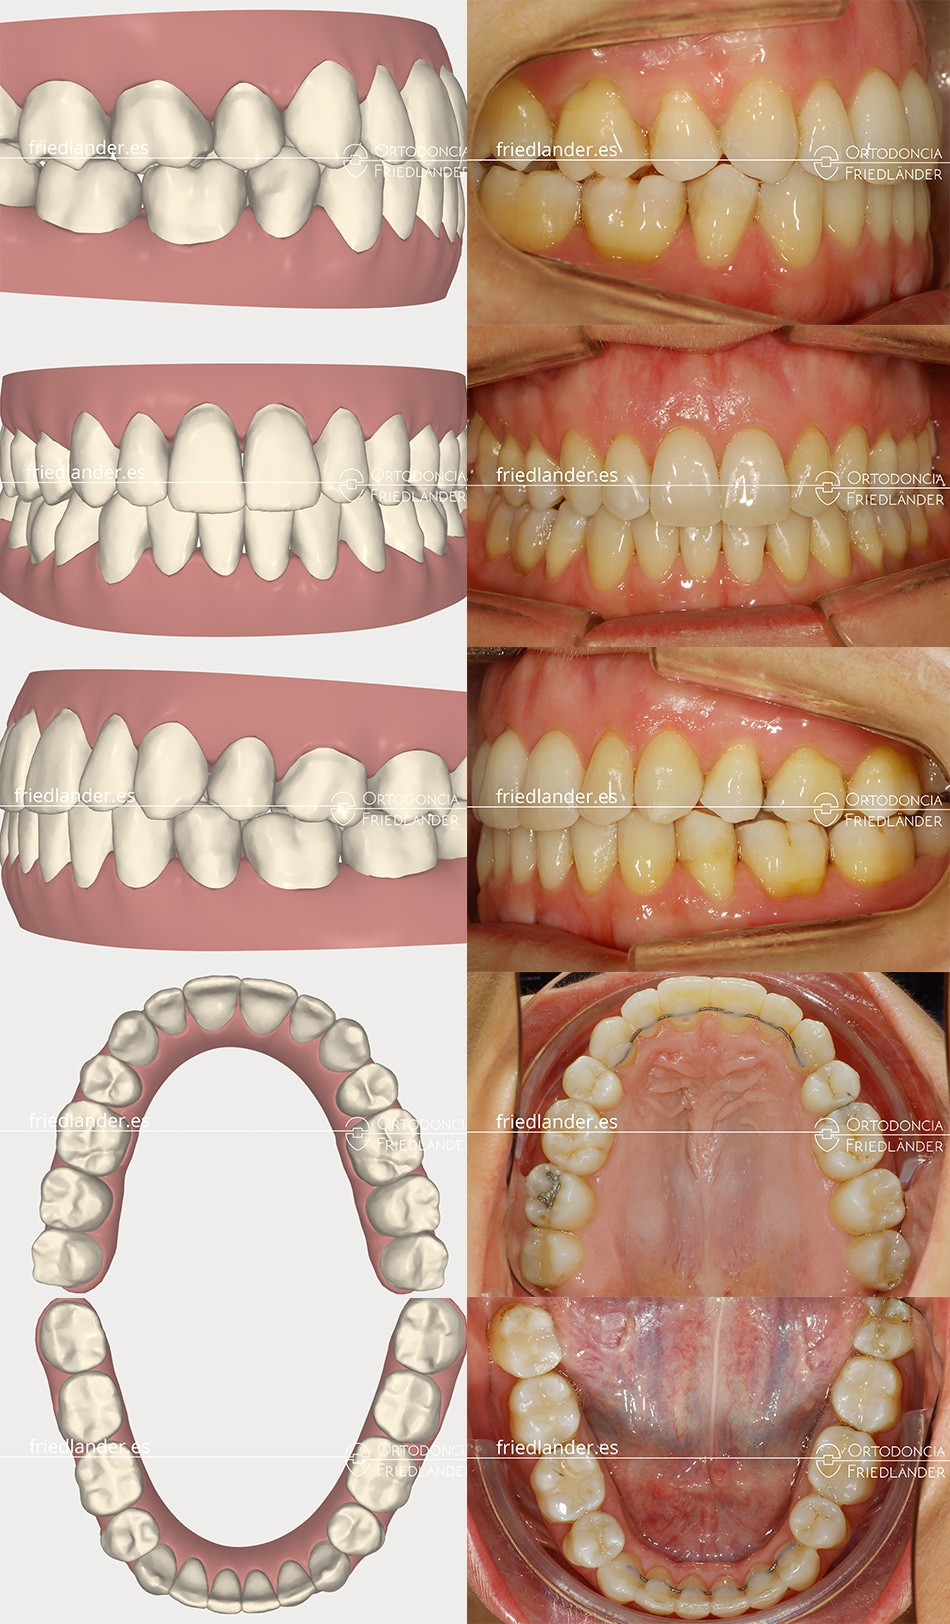 Ortodoncia Friedlander Barcelona invisalign transparente invisible clincheck